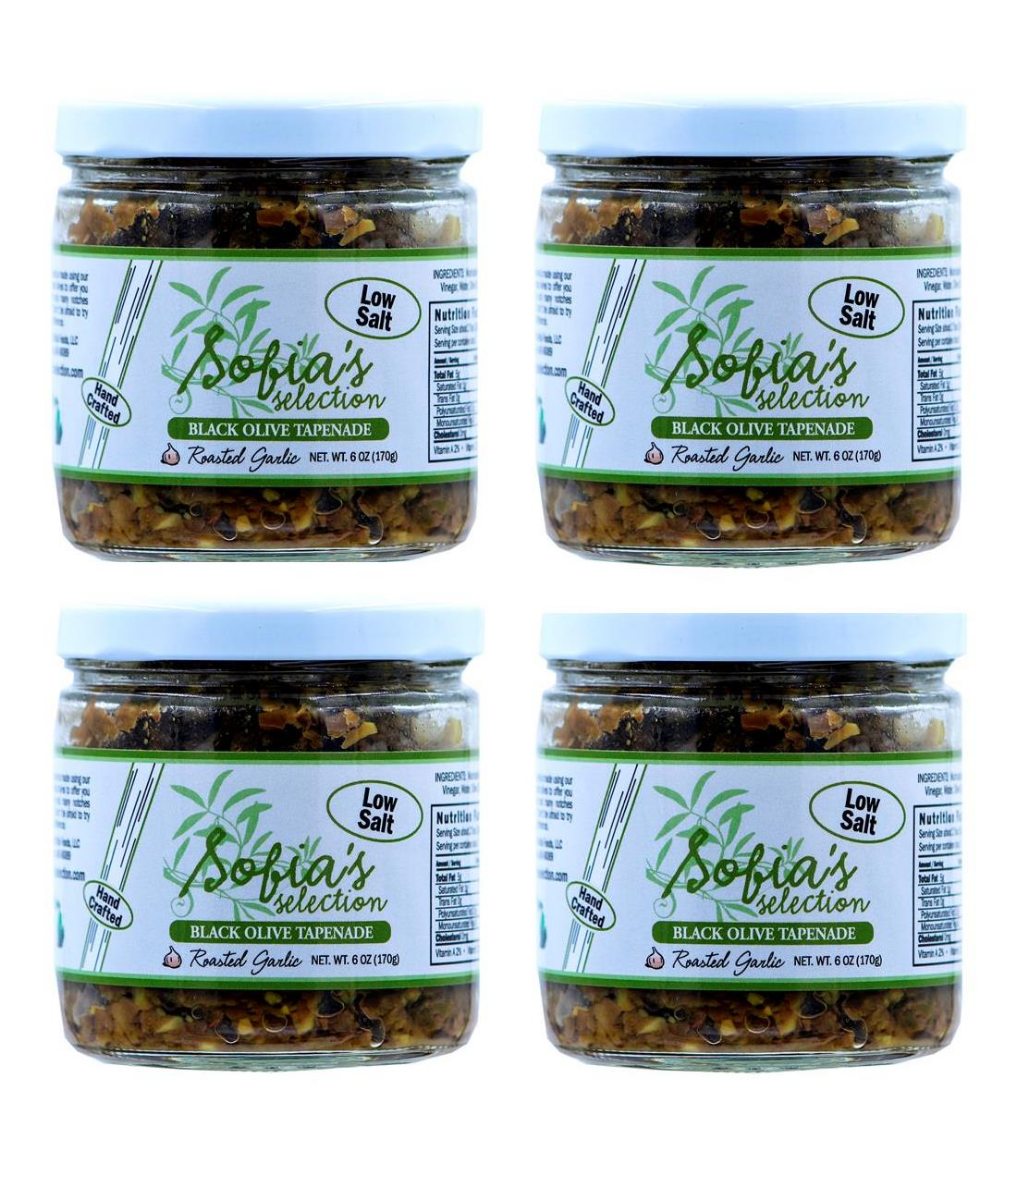 sofias-selection-roasted-garlic-olive-tapenade-4-pack